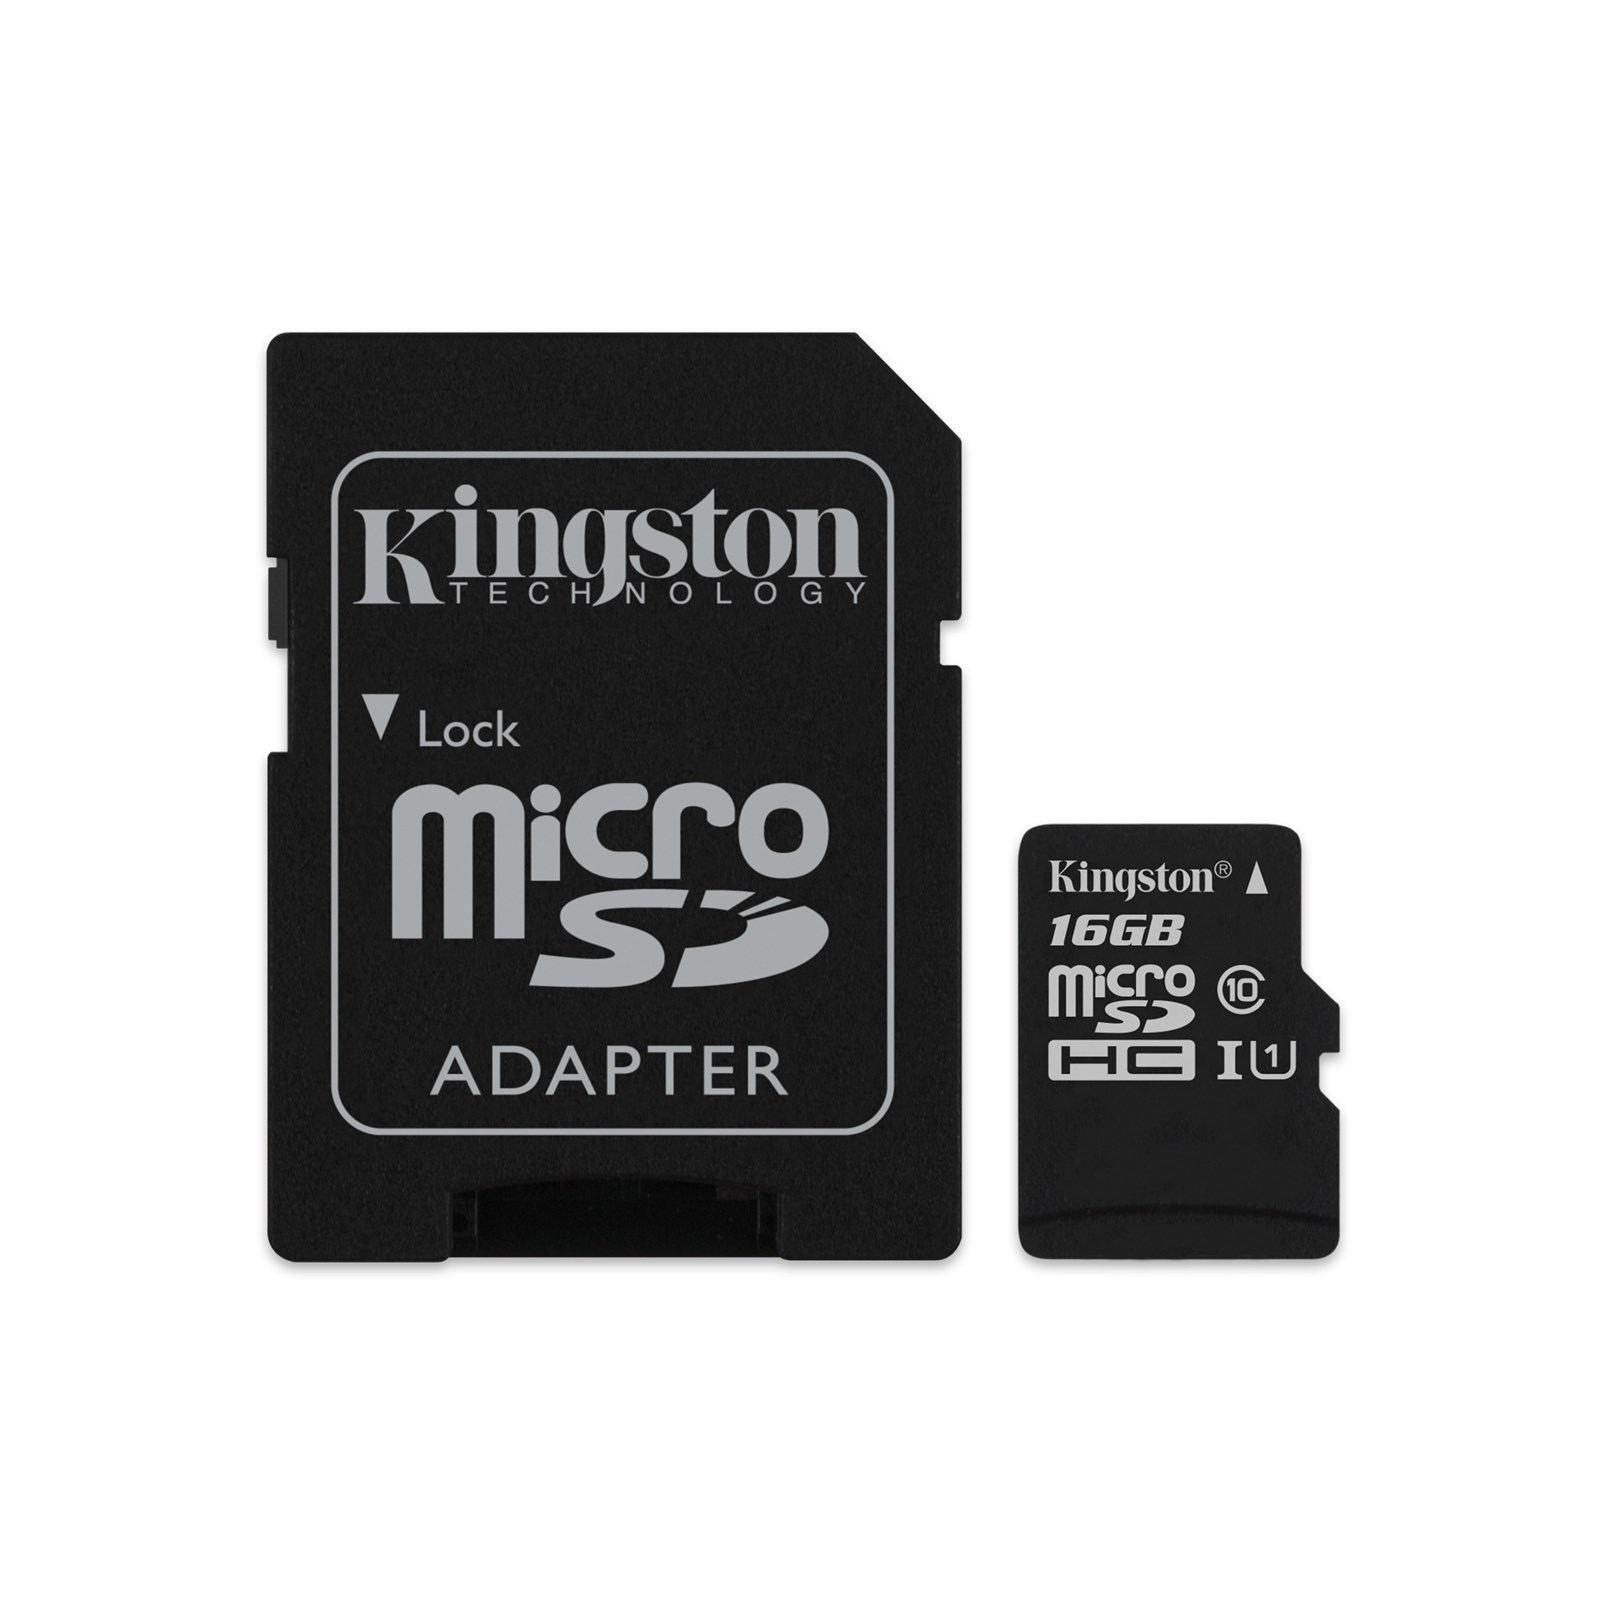 KINGSTON 16 GB Micro SDHC Memory Card with Adaptor